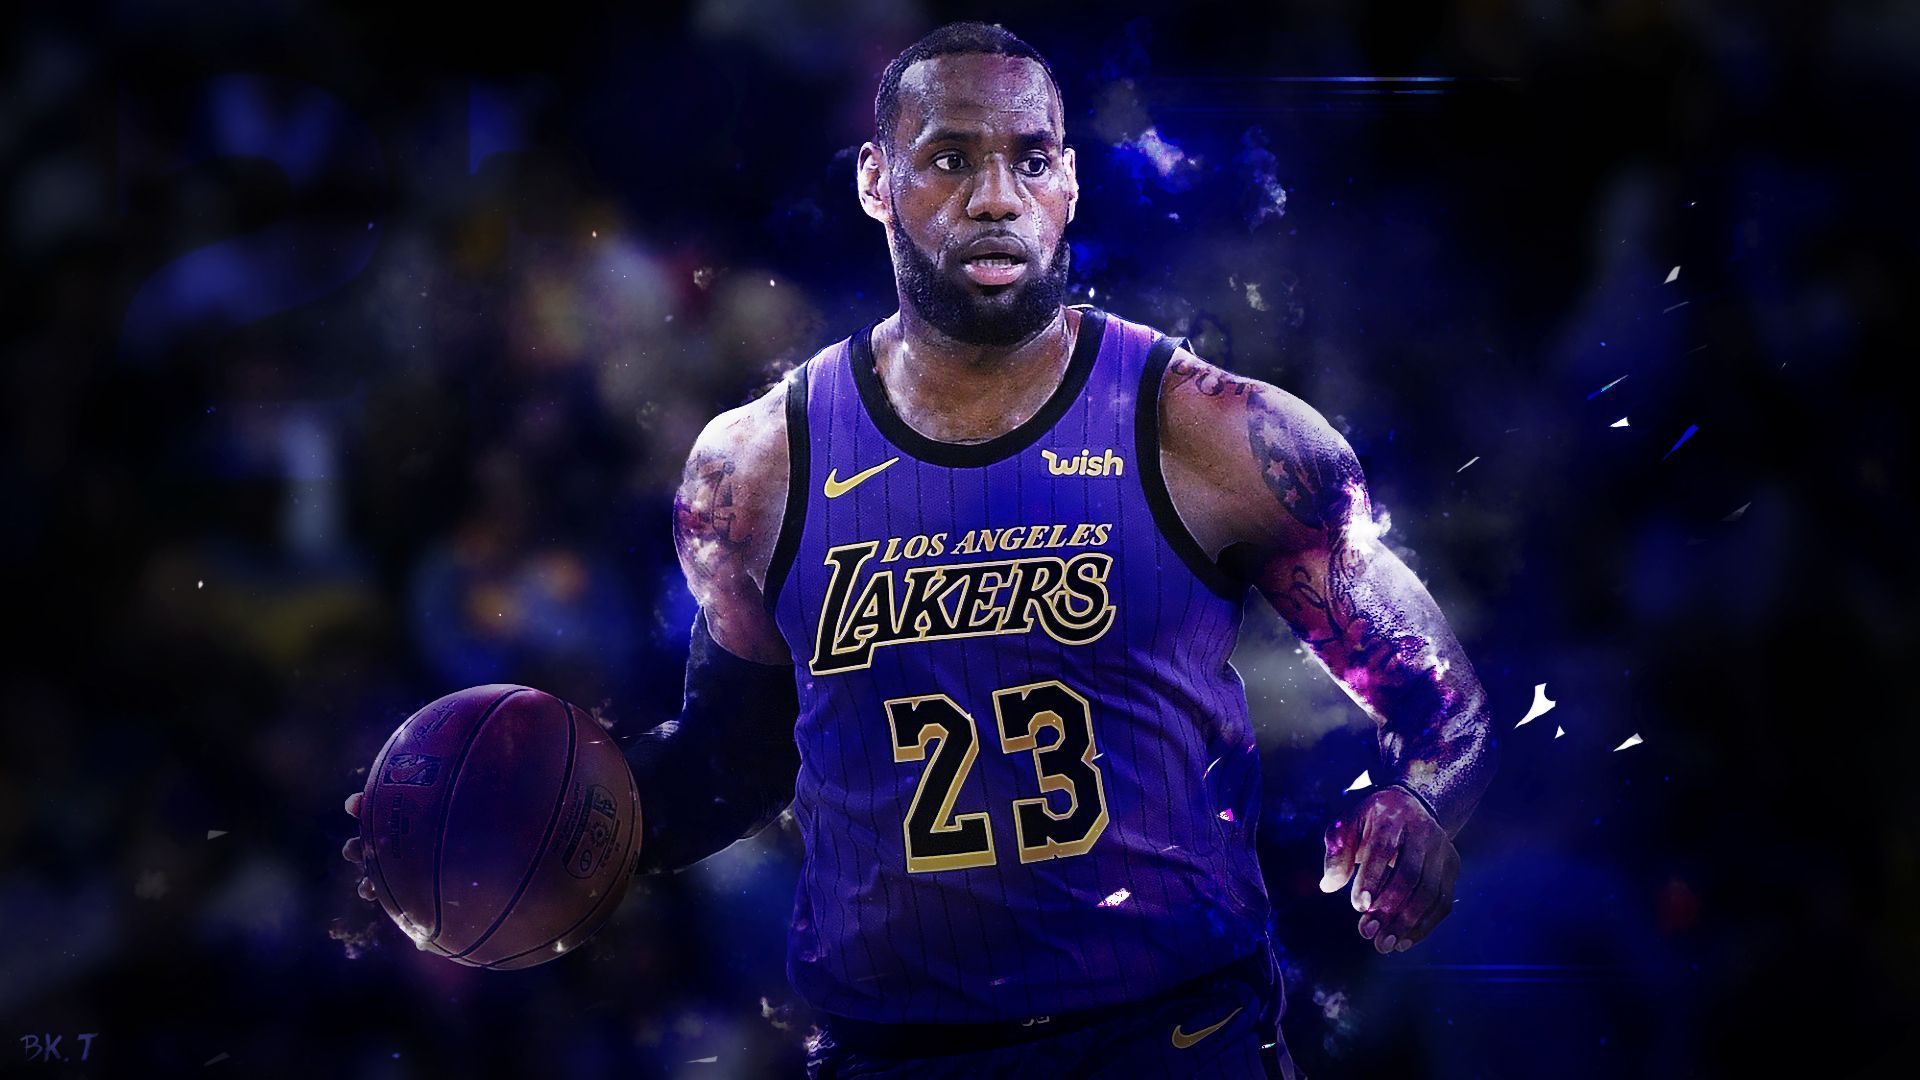 Lebron James Cool Wallpapers Top Free Lebron James Cool Backgrounds Wallpaperaccess